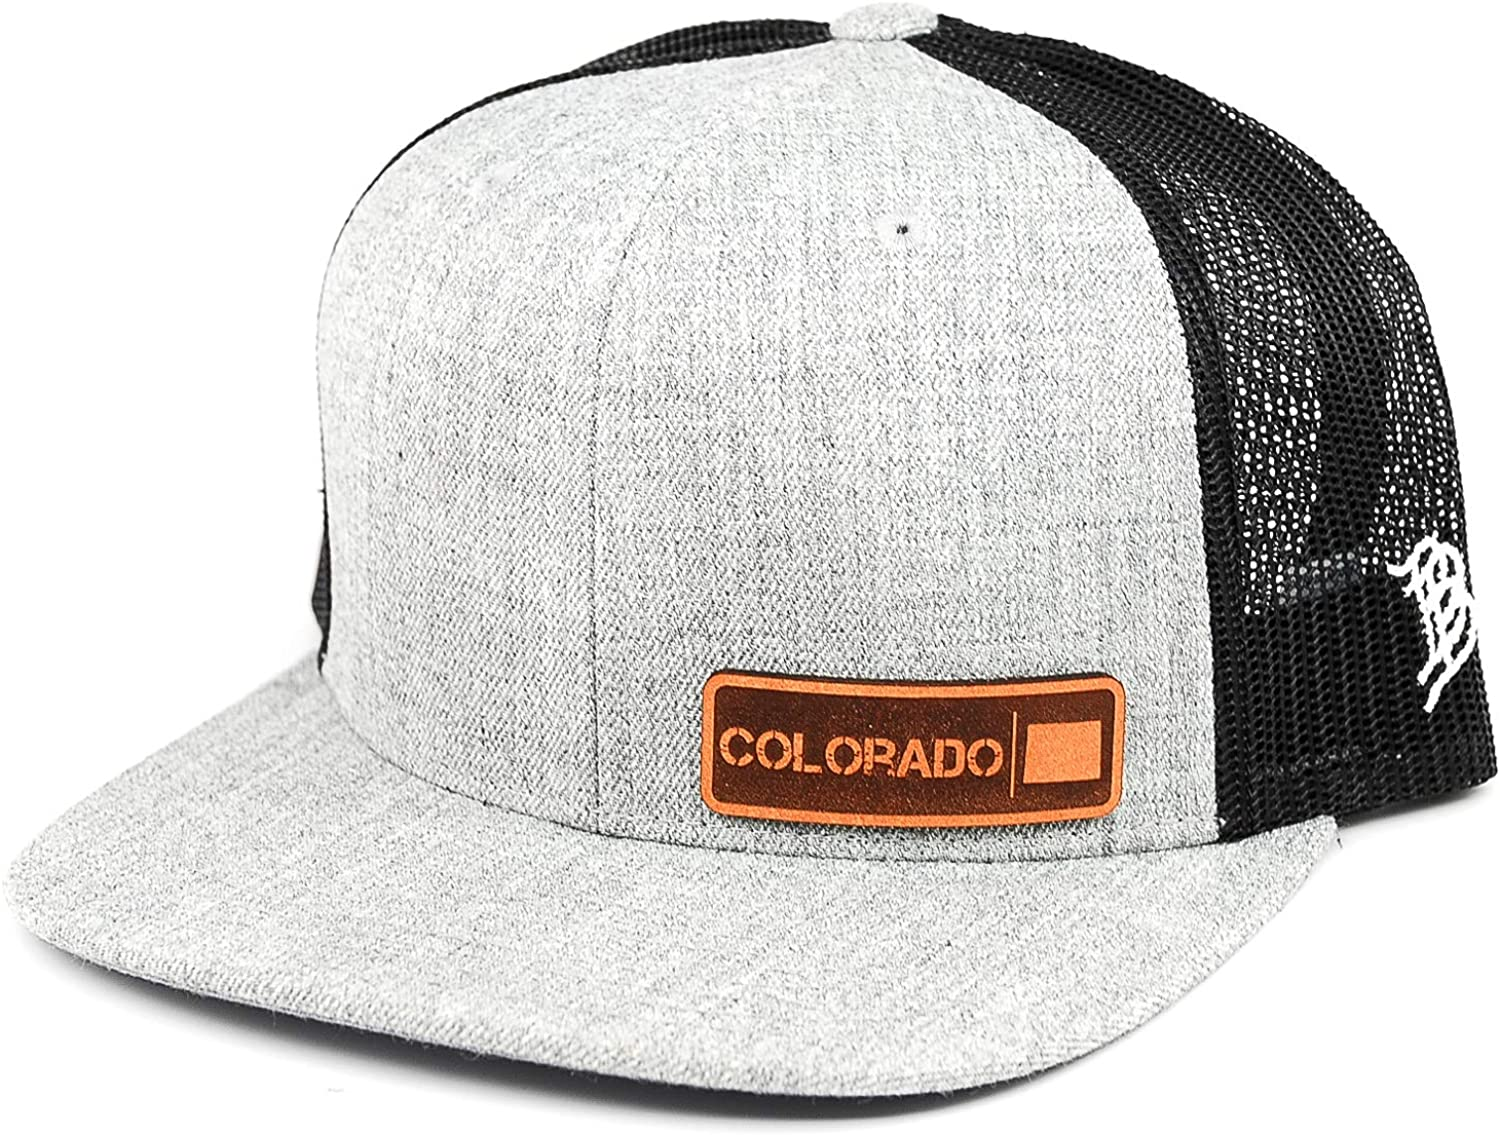 Branded Bills 'The Colorado Native' Leather Patch Hat Flat Trucker